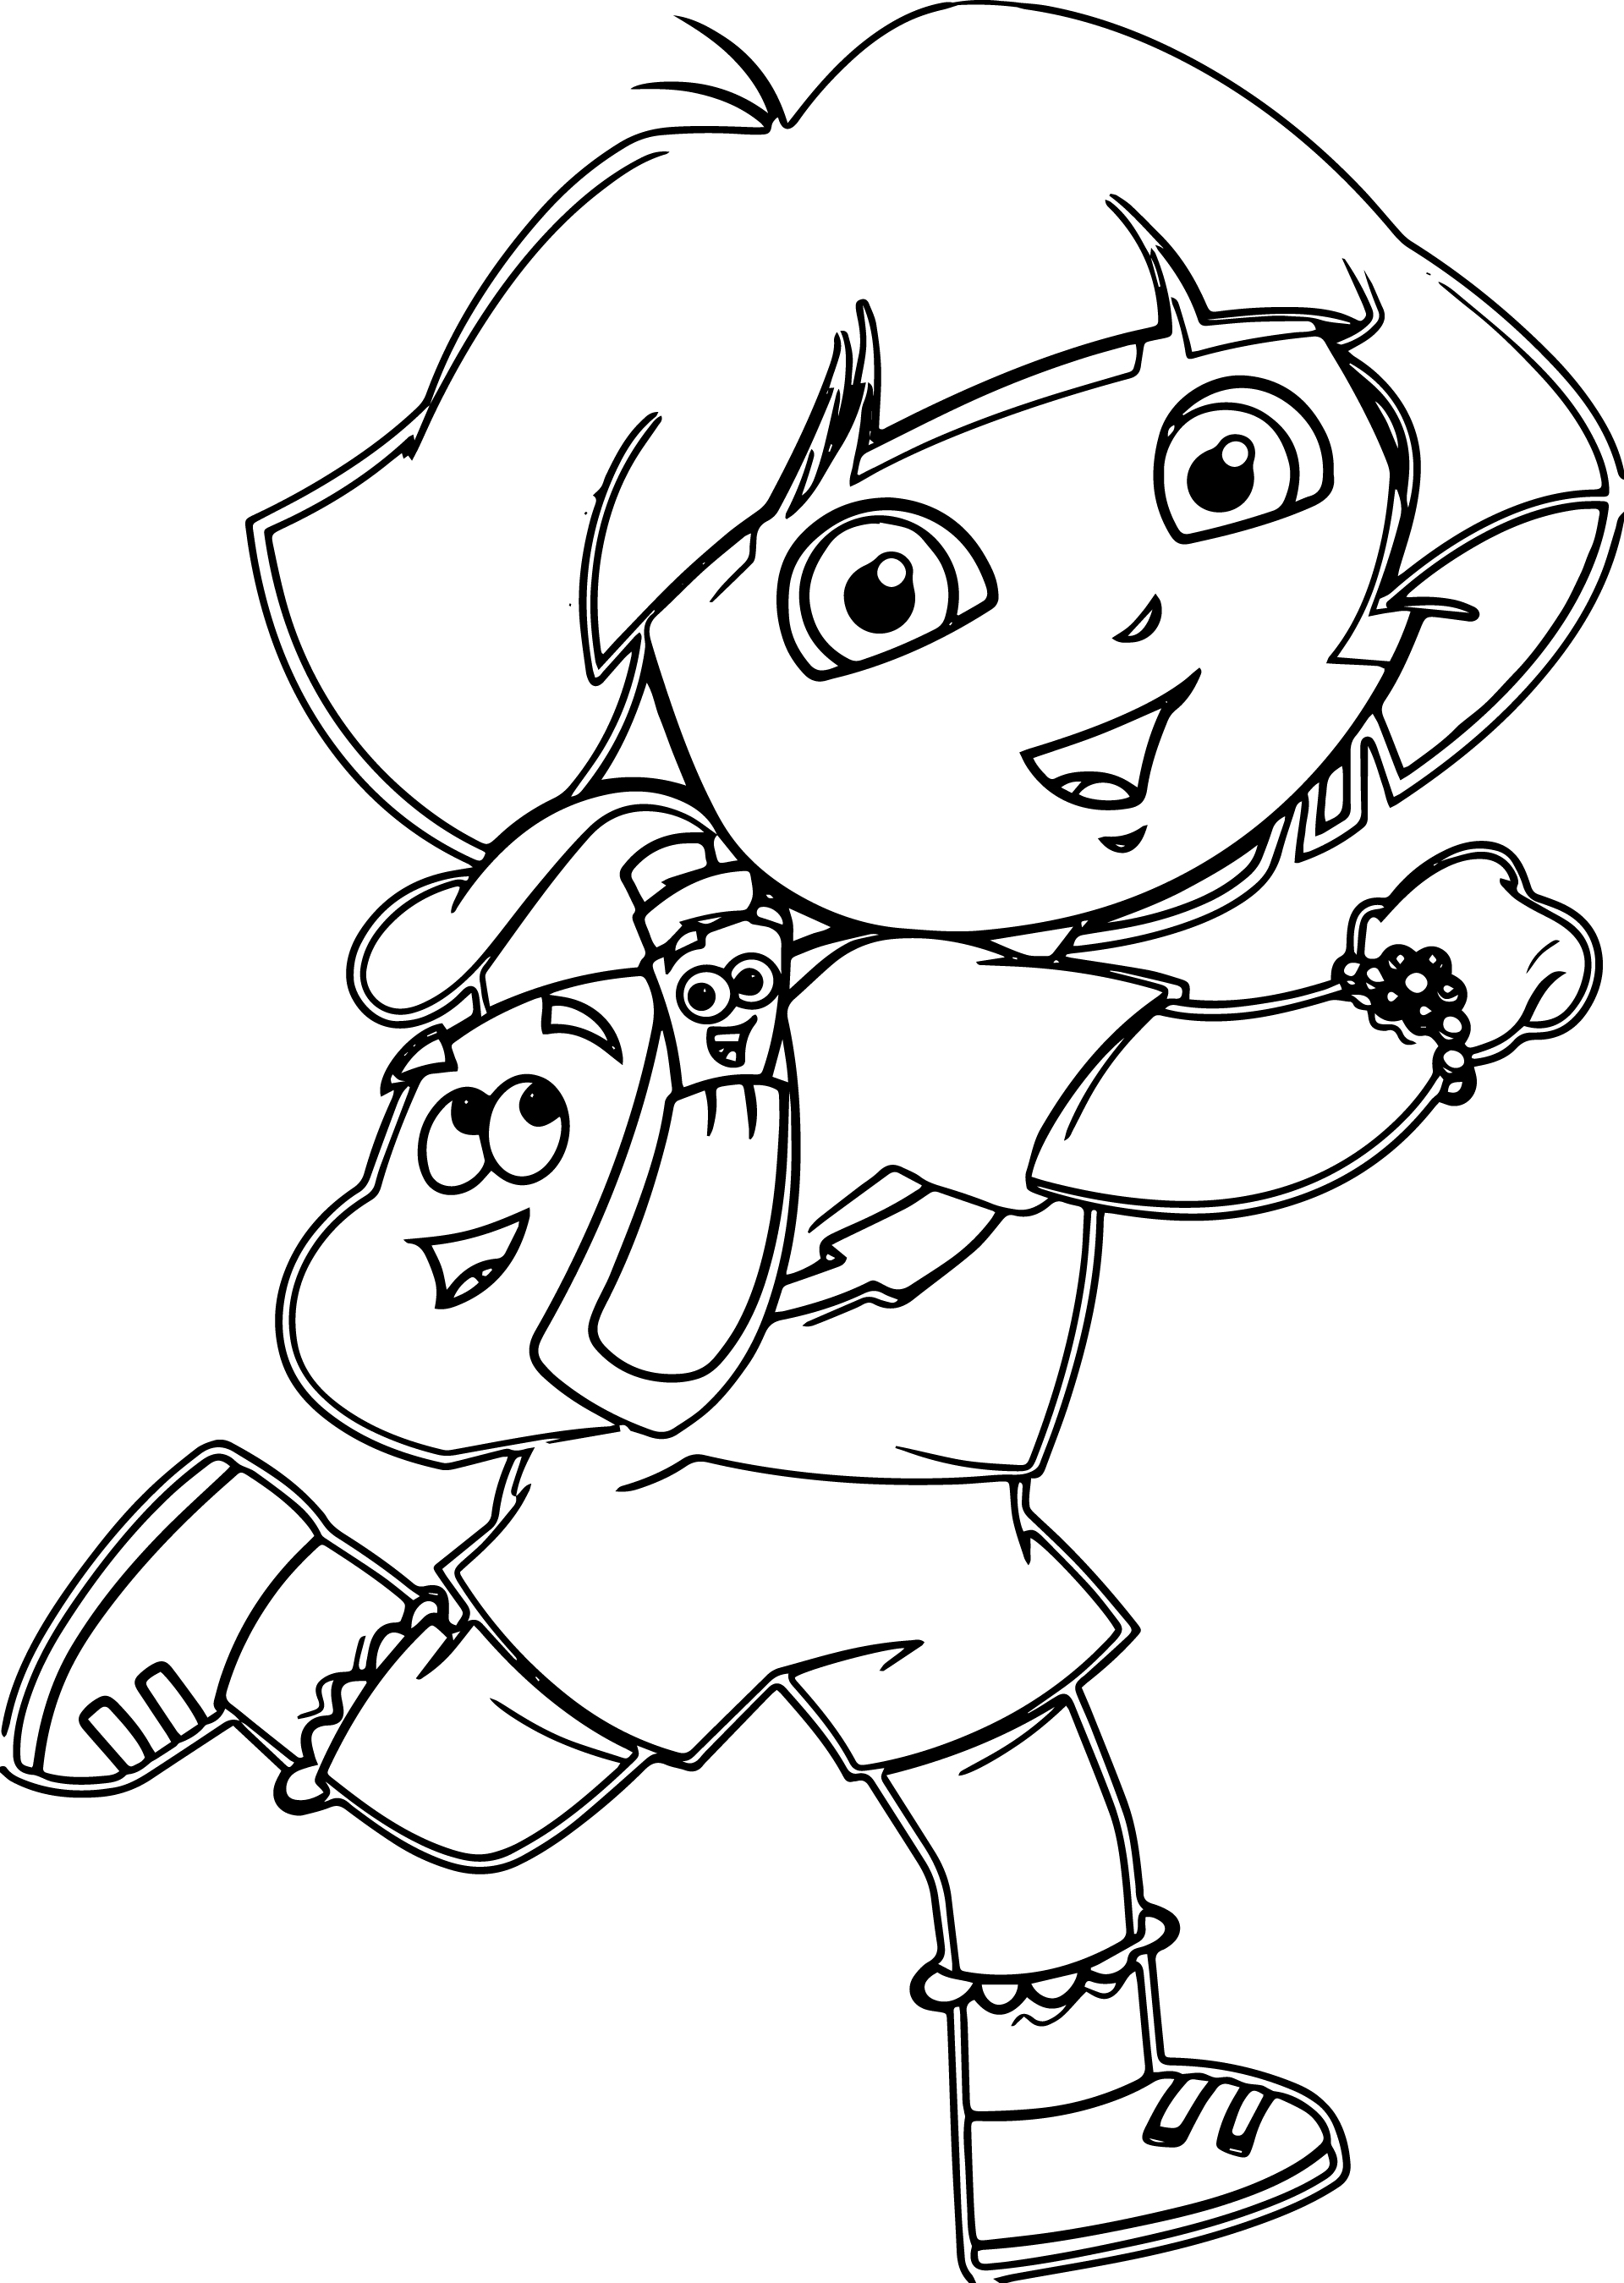 dora pictures to color and print dora coloring pages free printables momjunction pictures color and print to dora